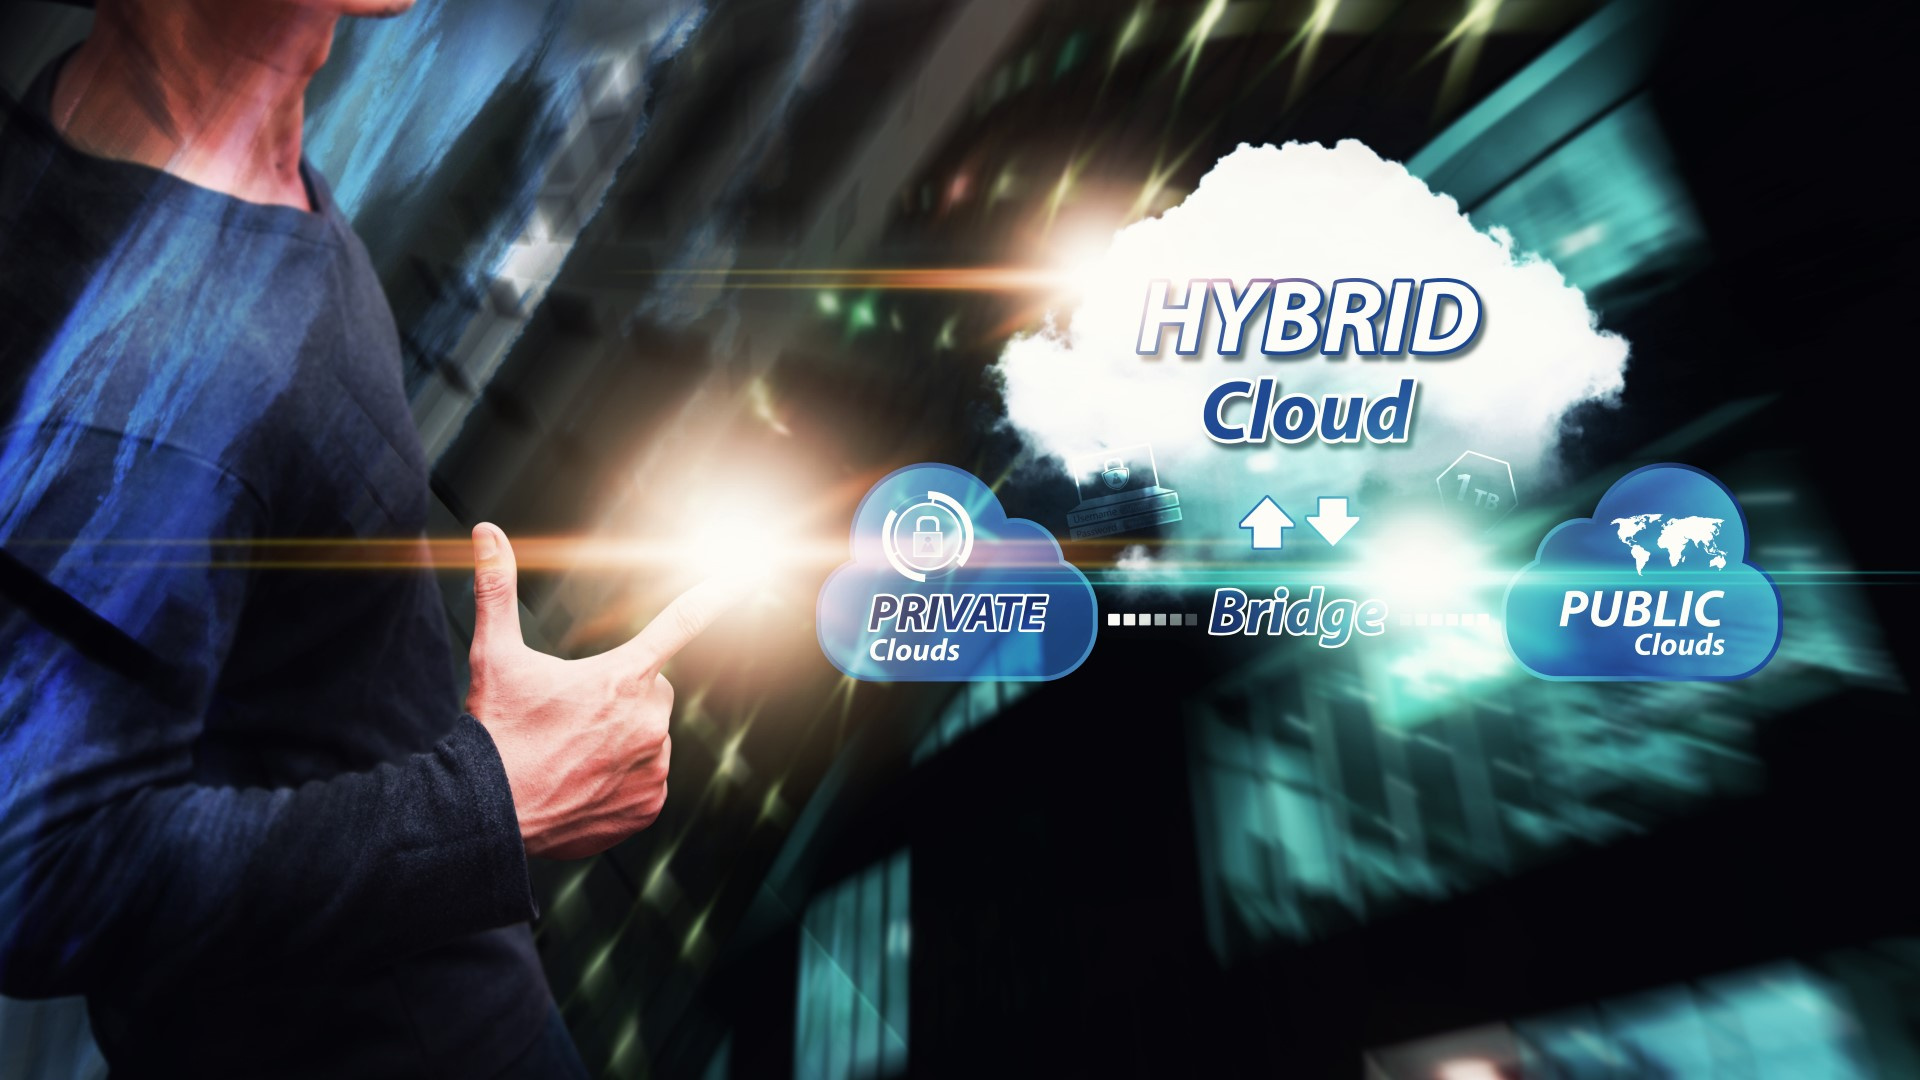 Cisco adjusts its systems and workforce for new cloud challenge